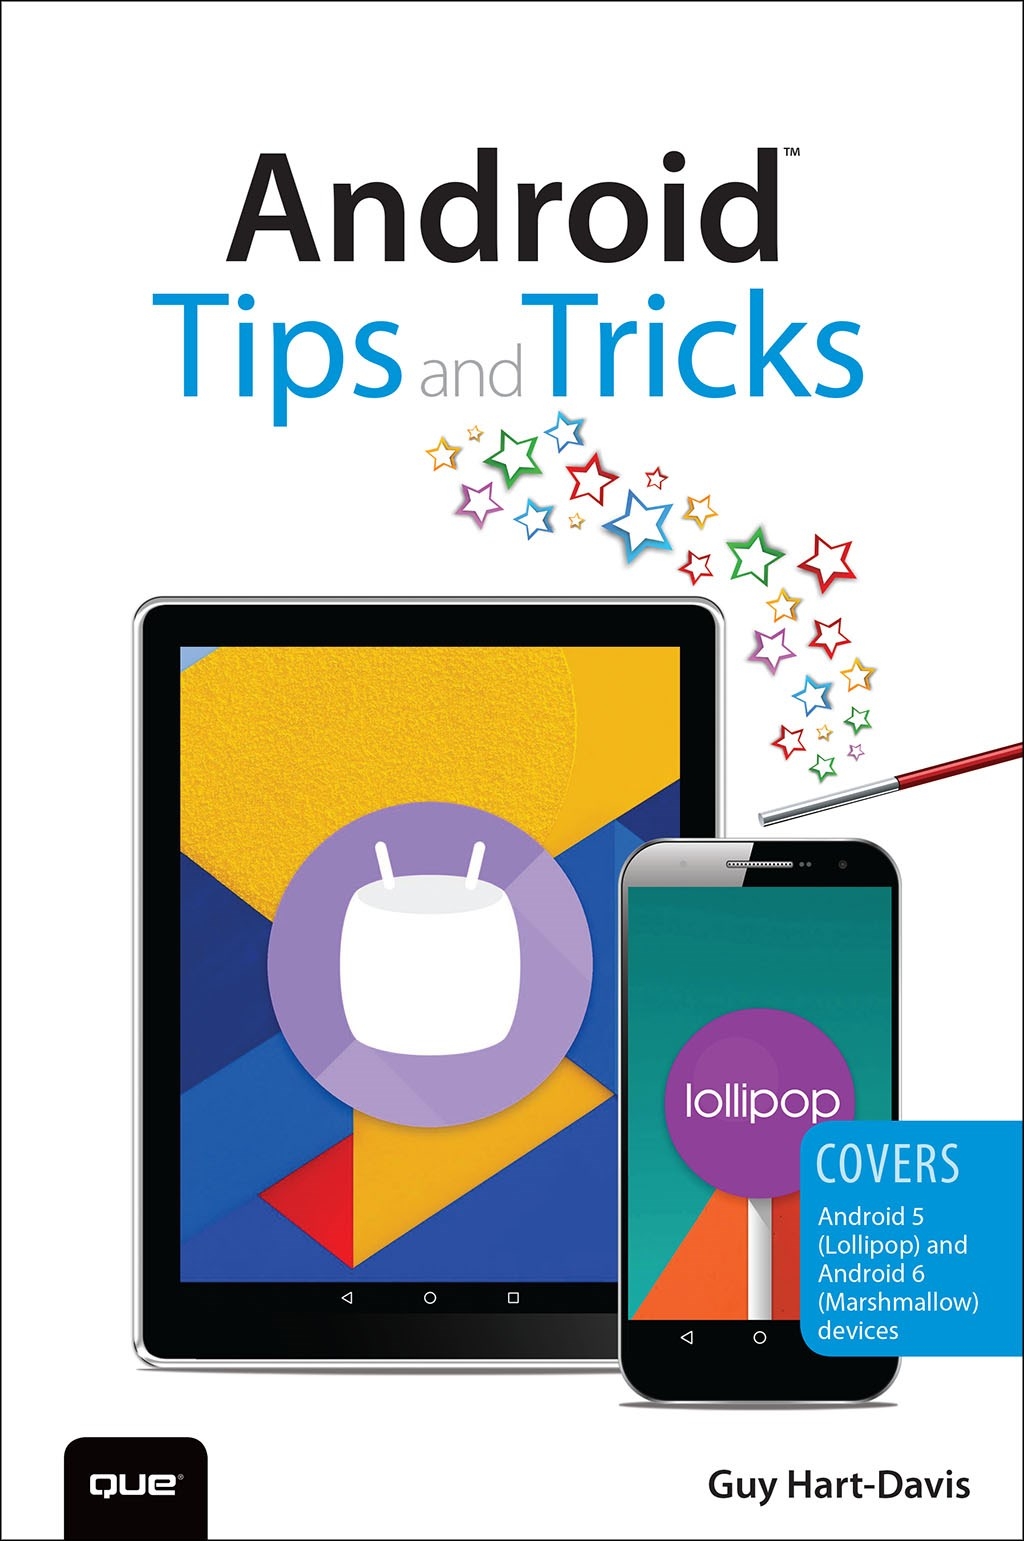 Android Tips and Tricks: Covers Android 5 and Android 6 devices, 2nd Edition